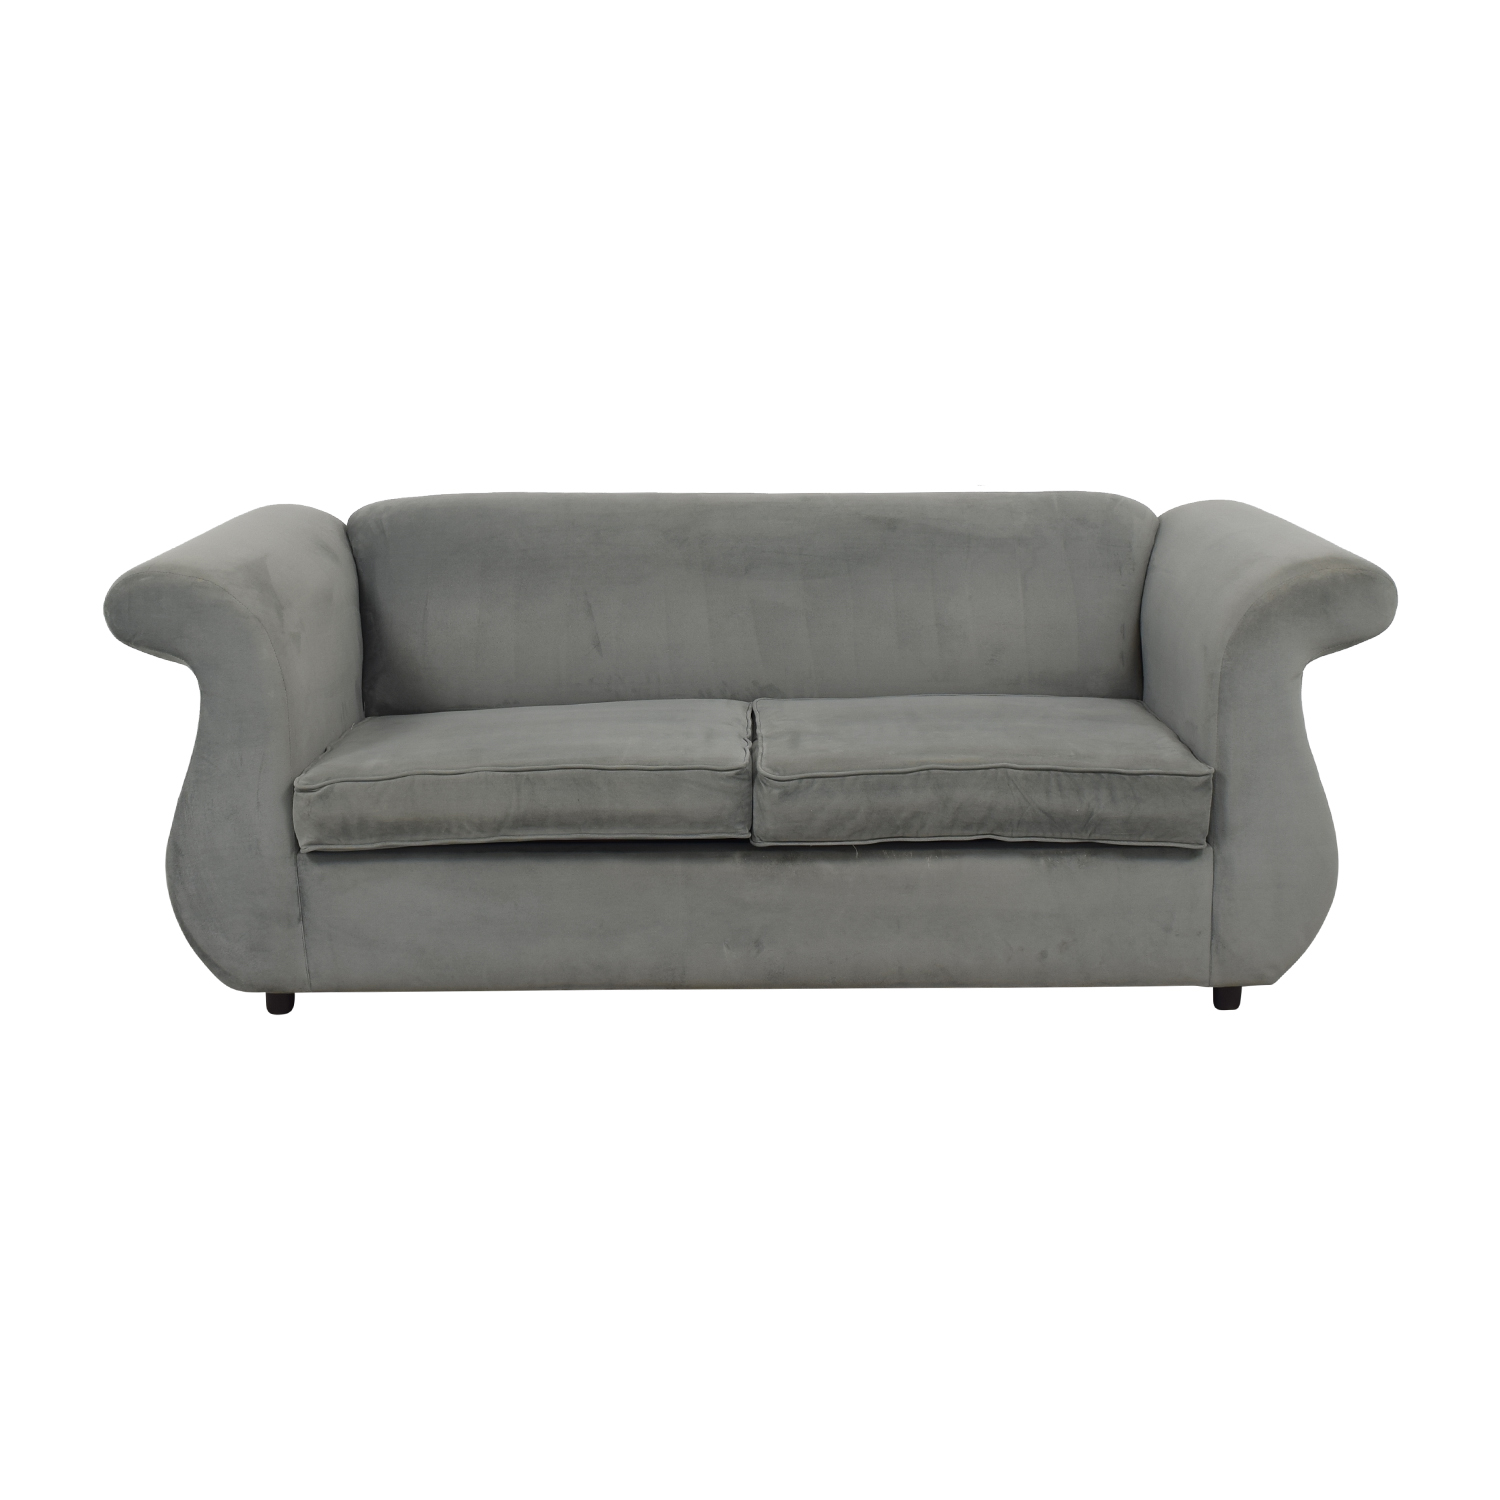 buy Funky Sofa FunkySofa Tiffanie Curved Sofa online